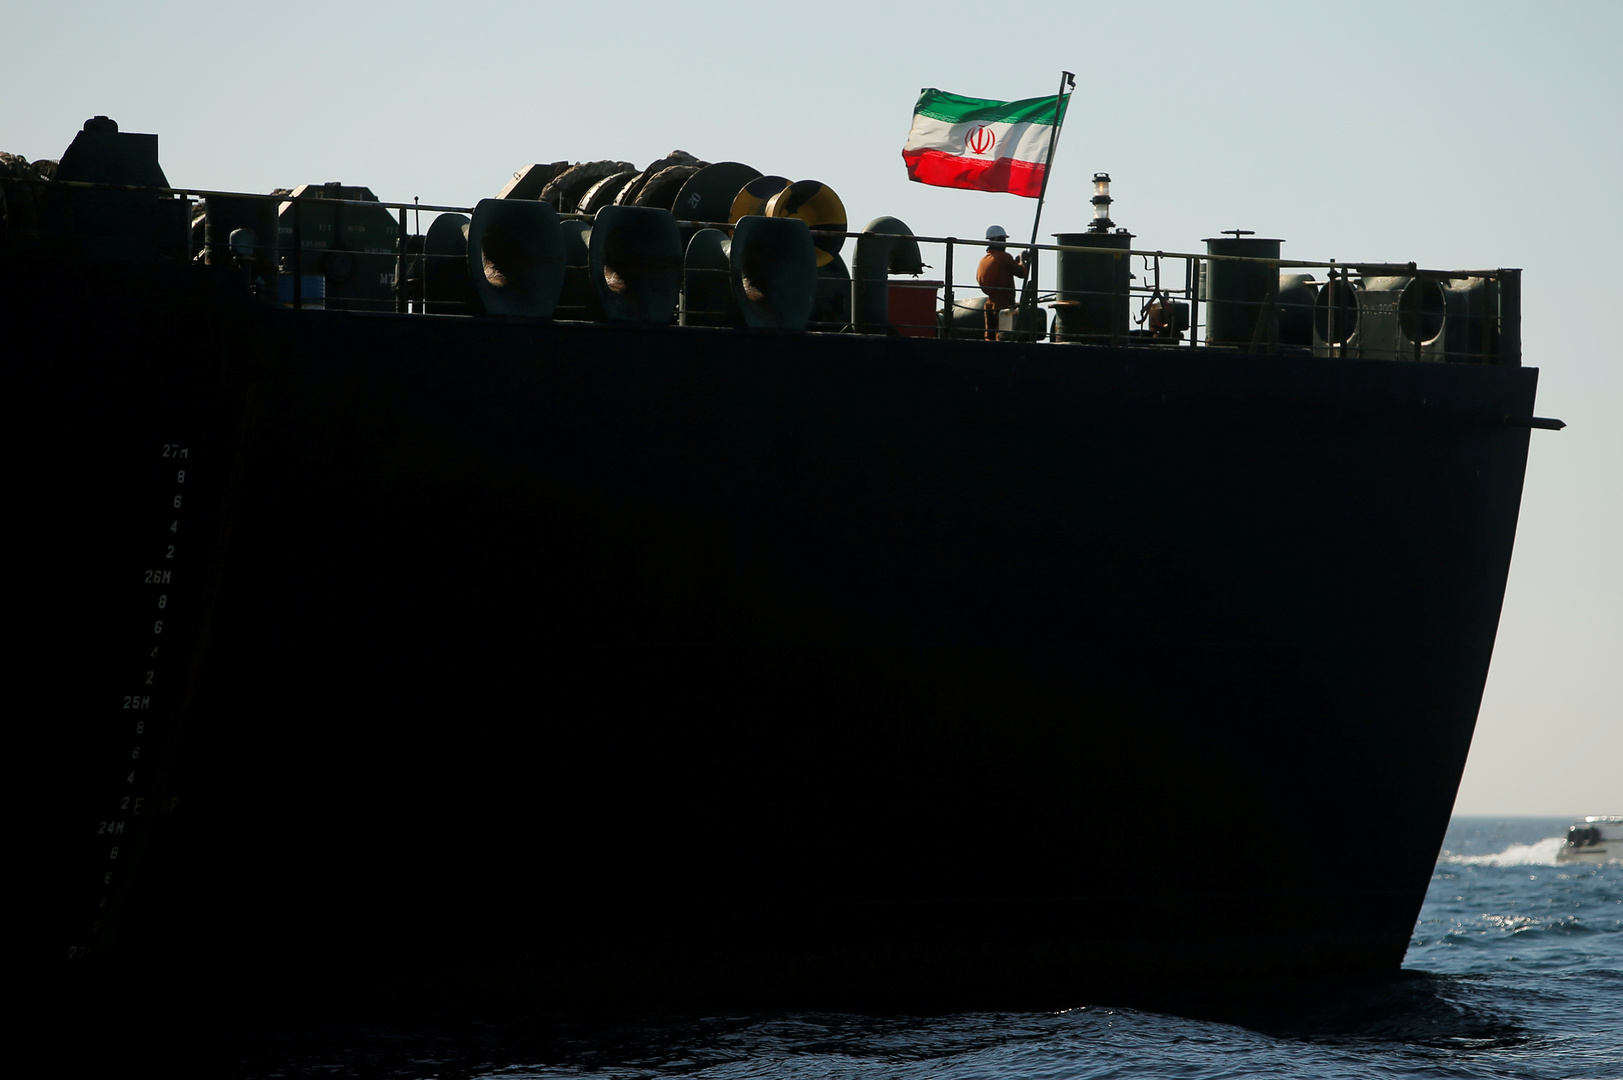 Iran publishes photos and video of its ship that targeted the eastern Mediterranean